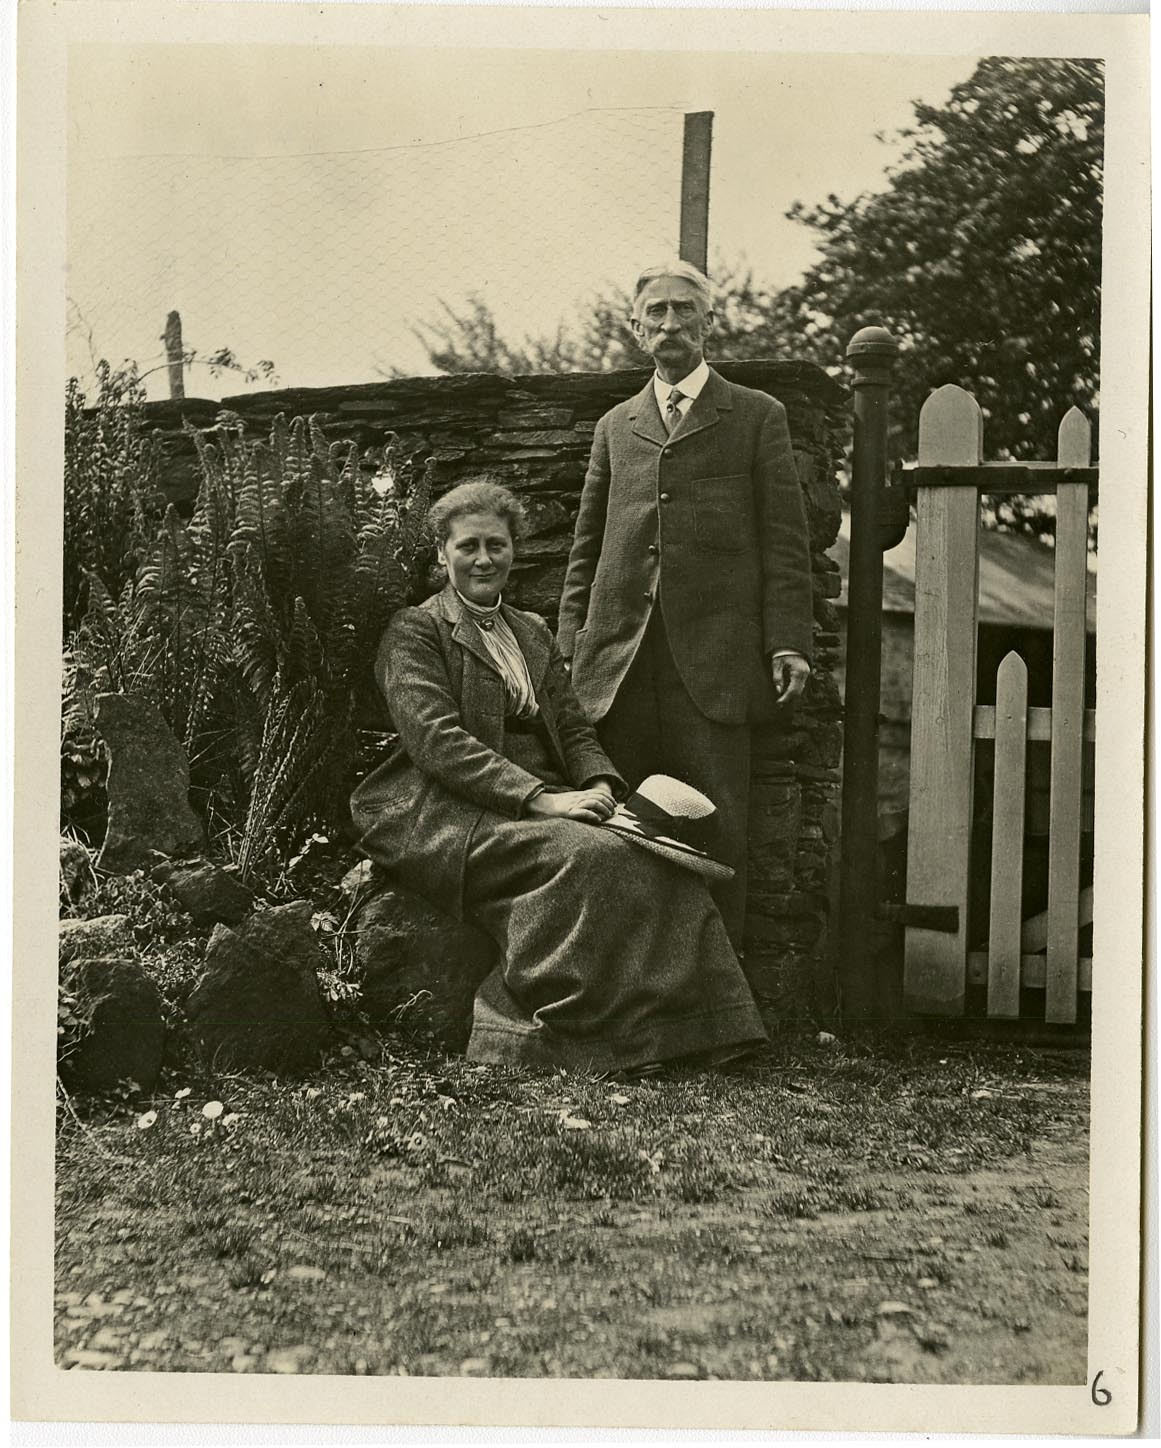 Beatrix seated with C.Y. King standing in her garden at Hill Top, near Sawrey